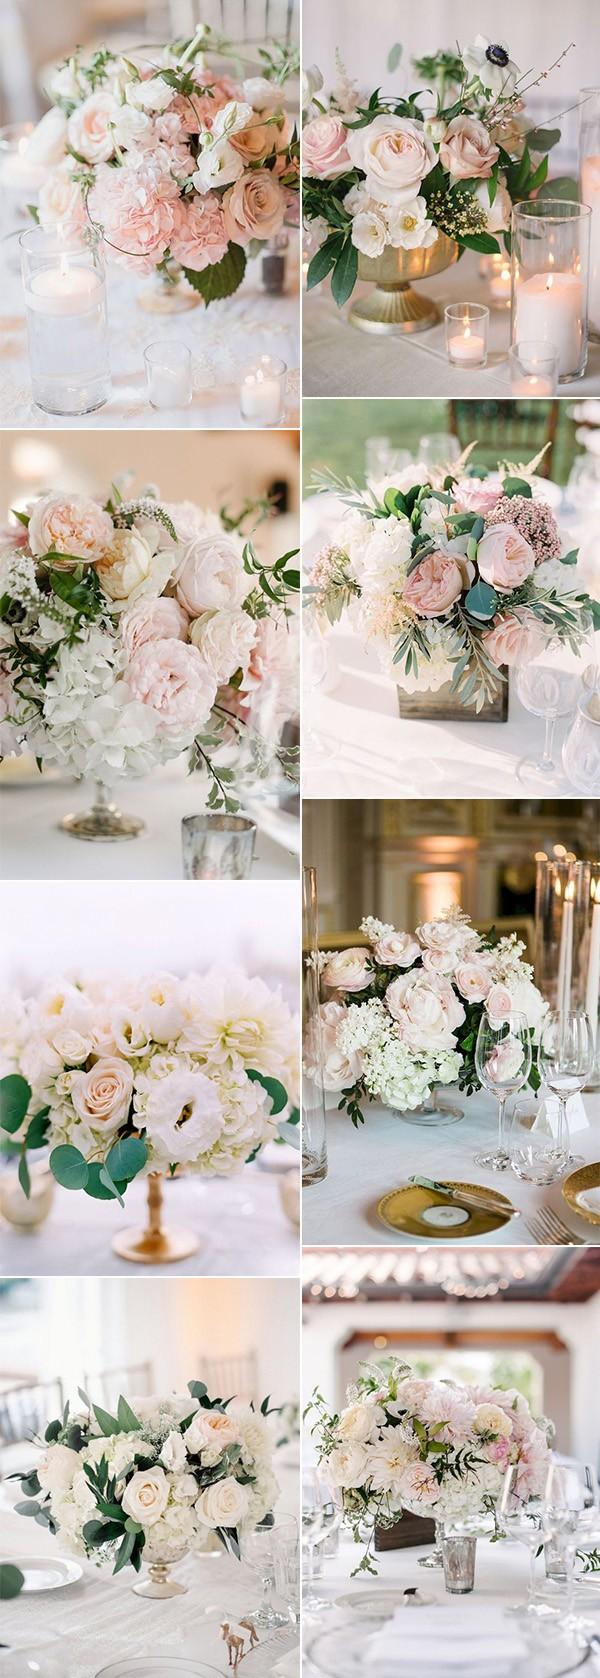 trending blush pink elegant wedding centerpiece ideas